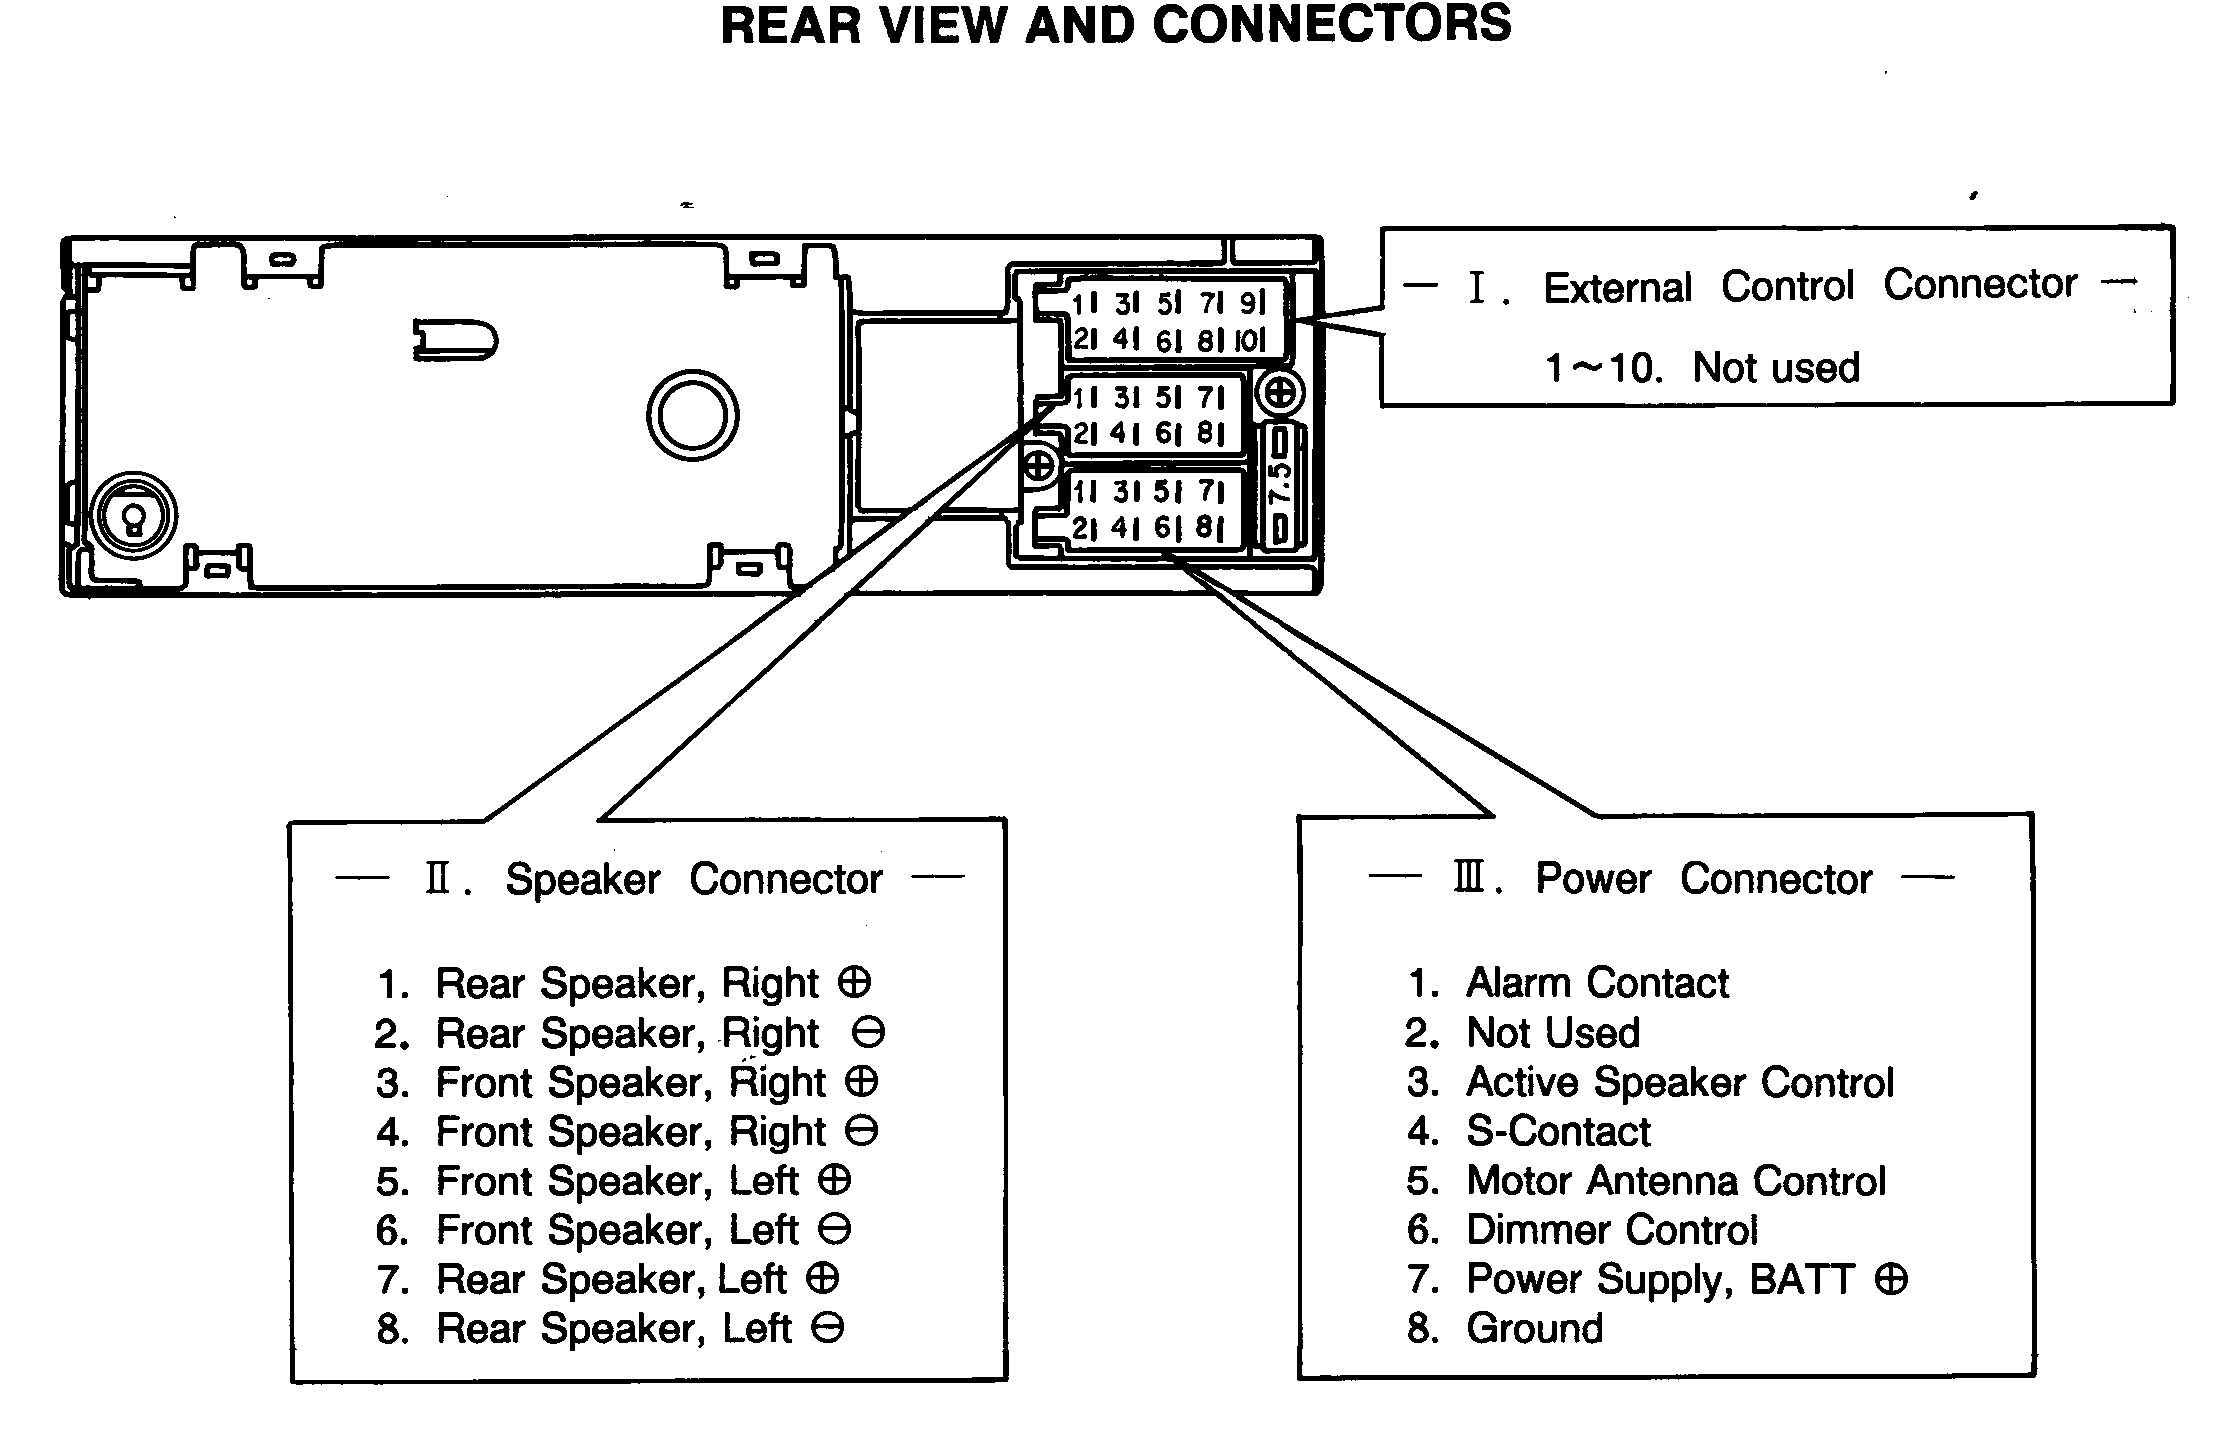 Car Stereo Wiring Diagram Honda Stereo Wiring Diagram Blurts Of Car Stereo Wiring Diagram